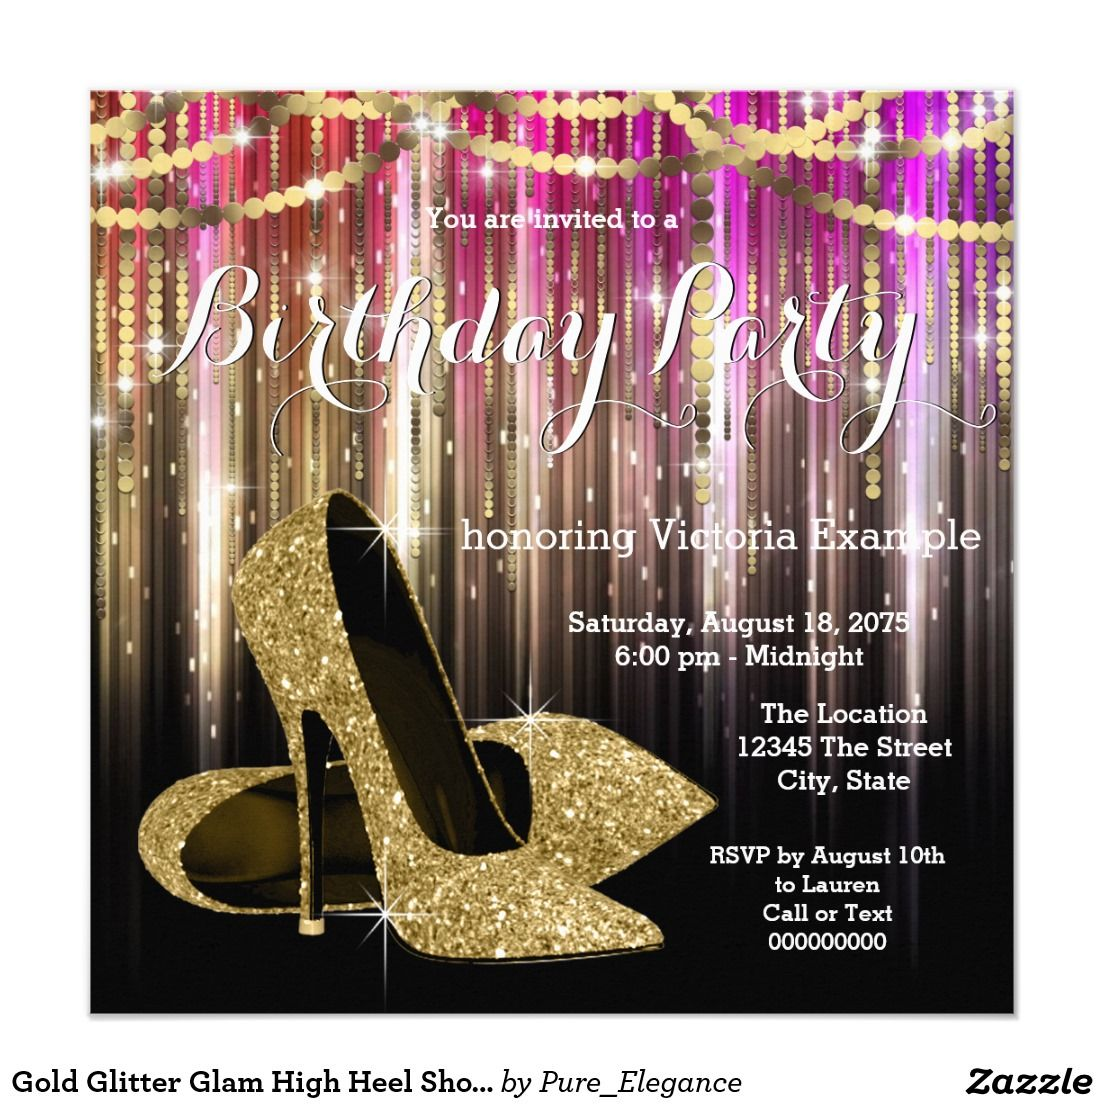 Gold Glitter Glam High Heel Shoe Birthday Party Card | Gold glitter ...